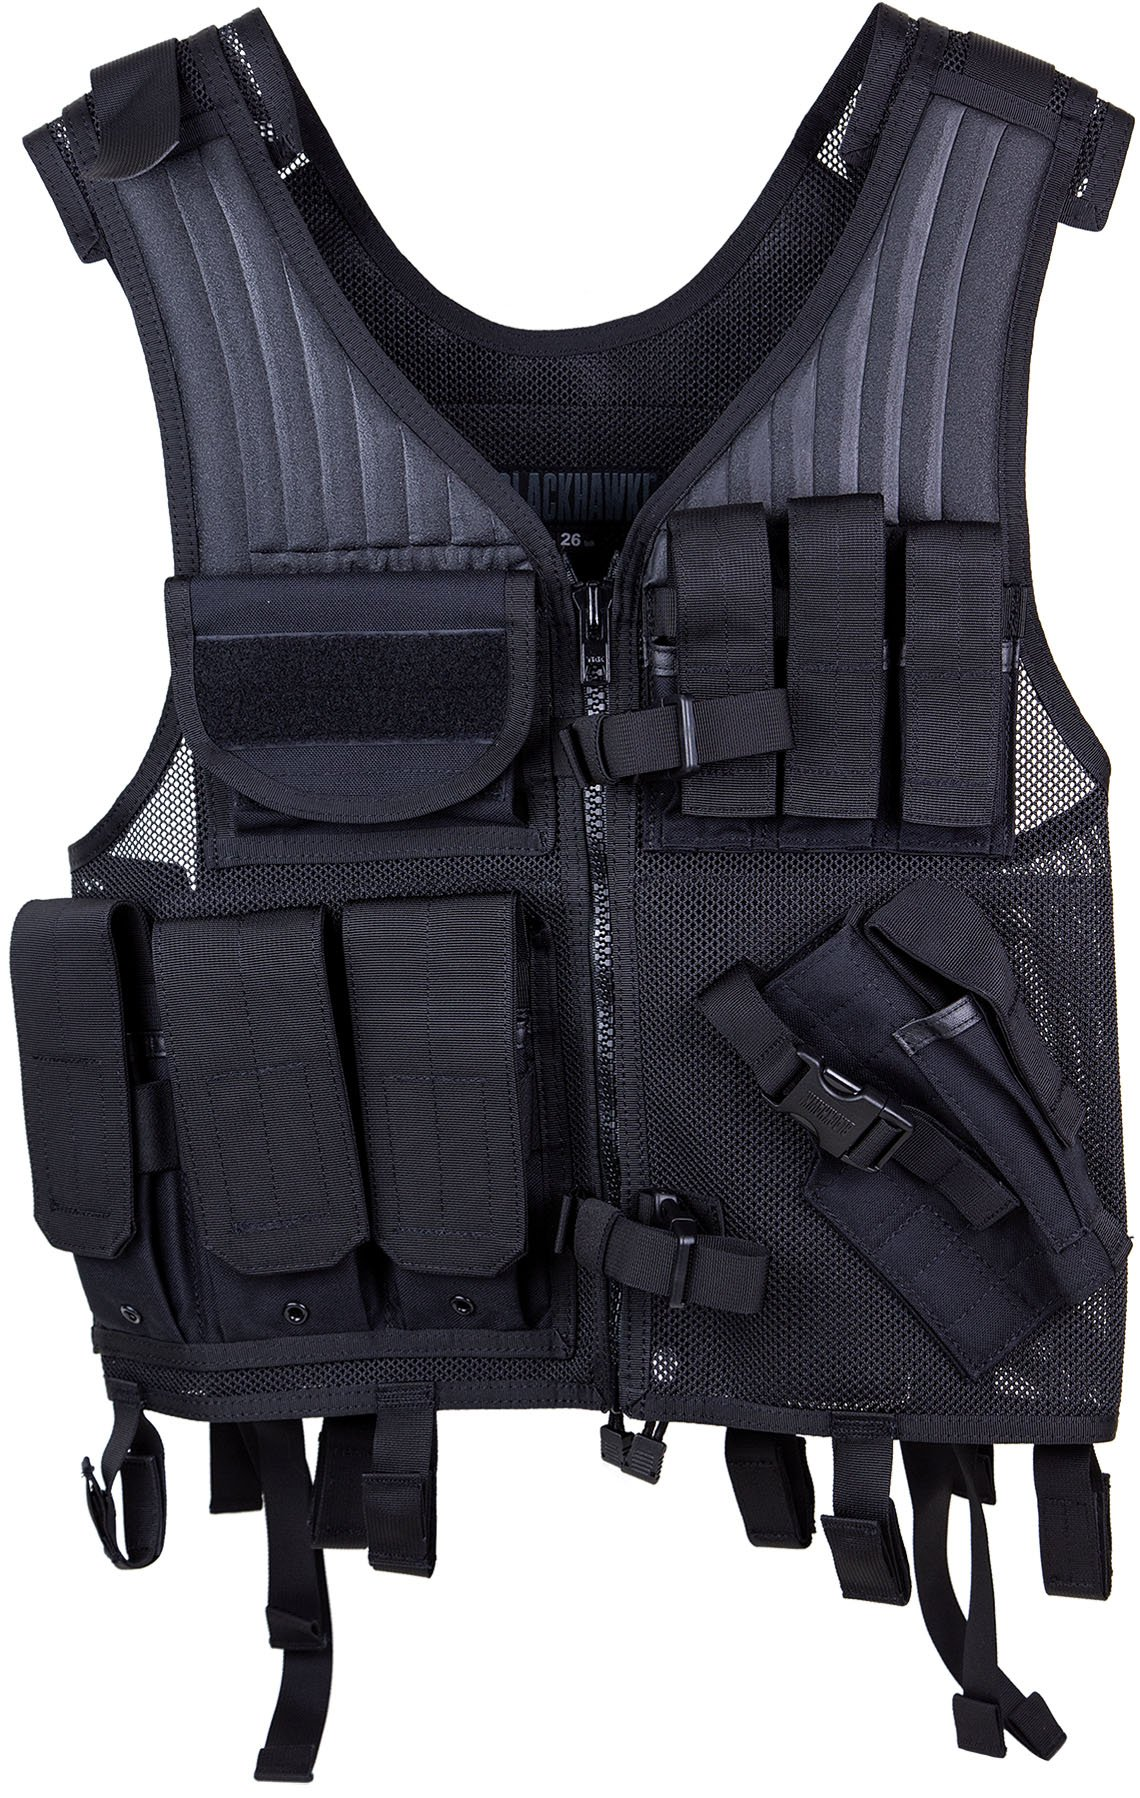 Elite Pistol Vest, Tactical Nylon Mesh, Adjustable Black by Elite